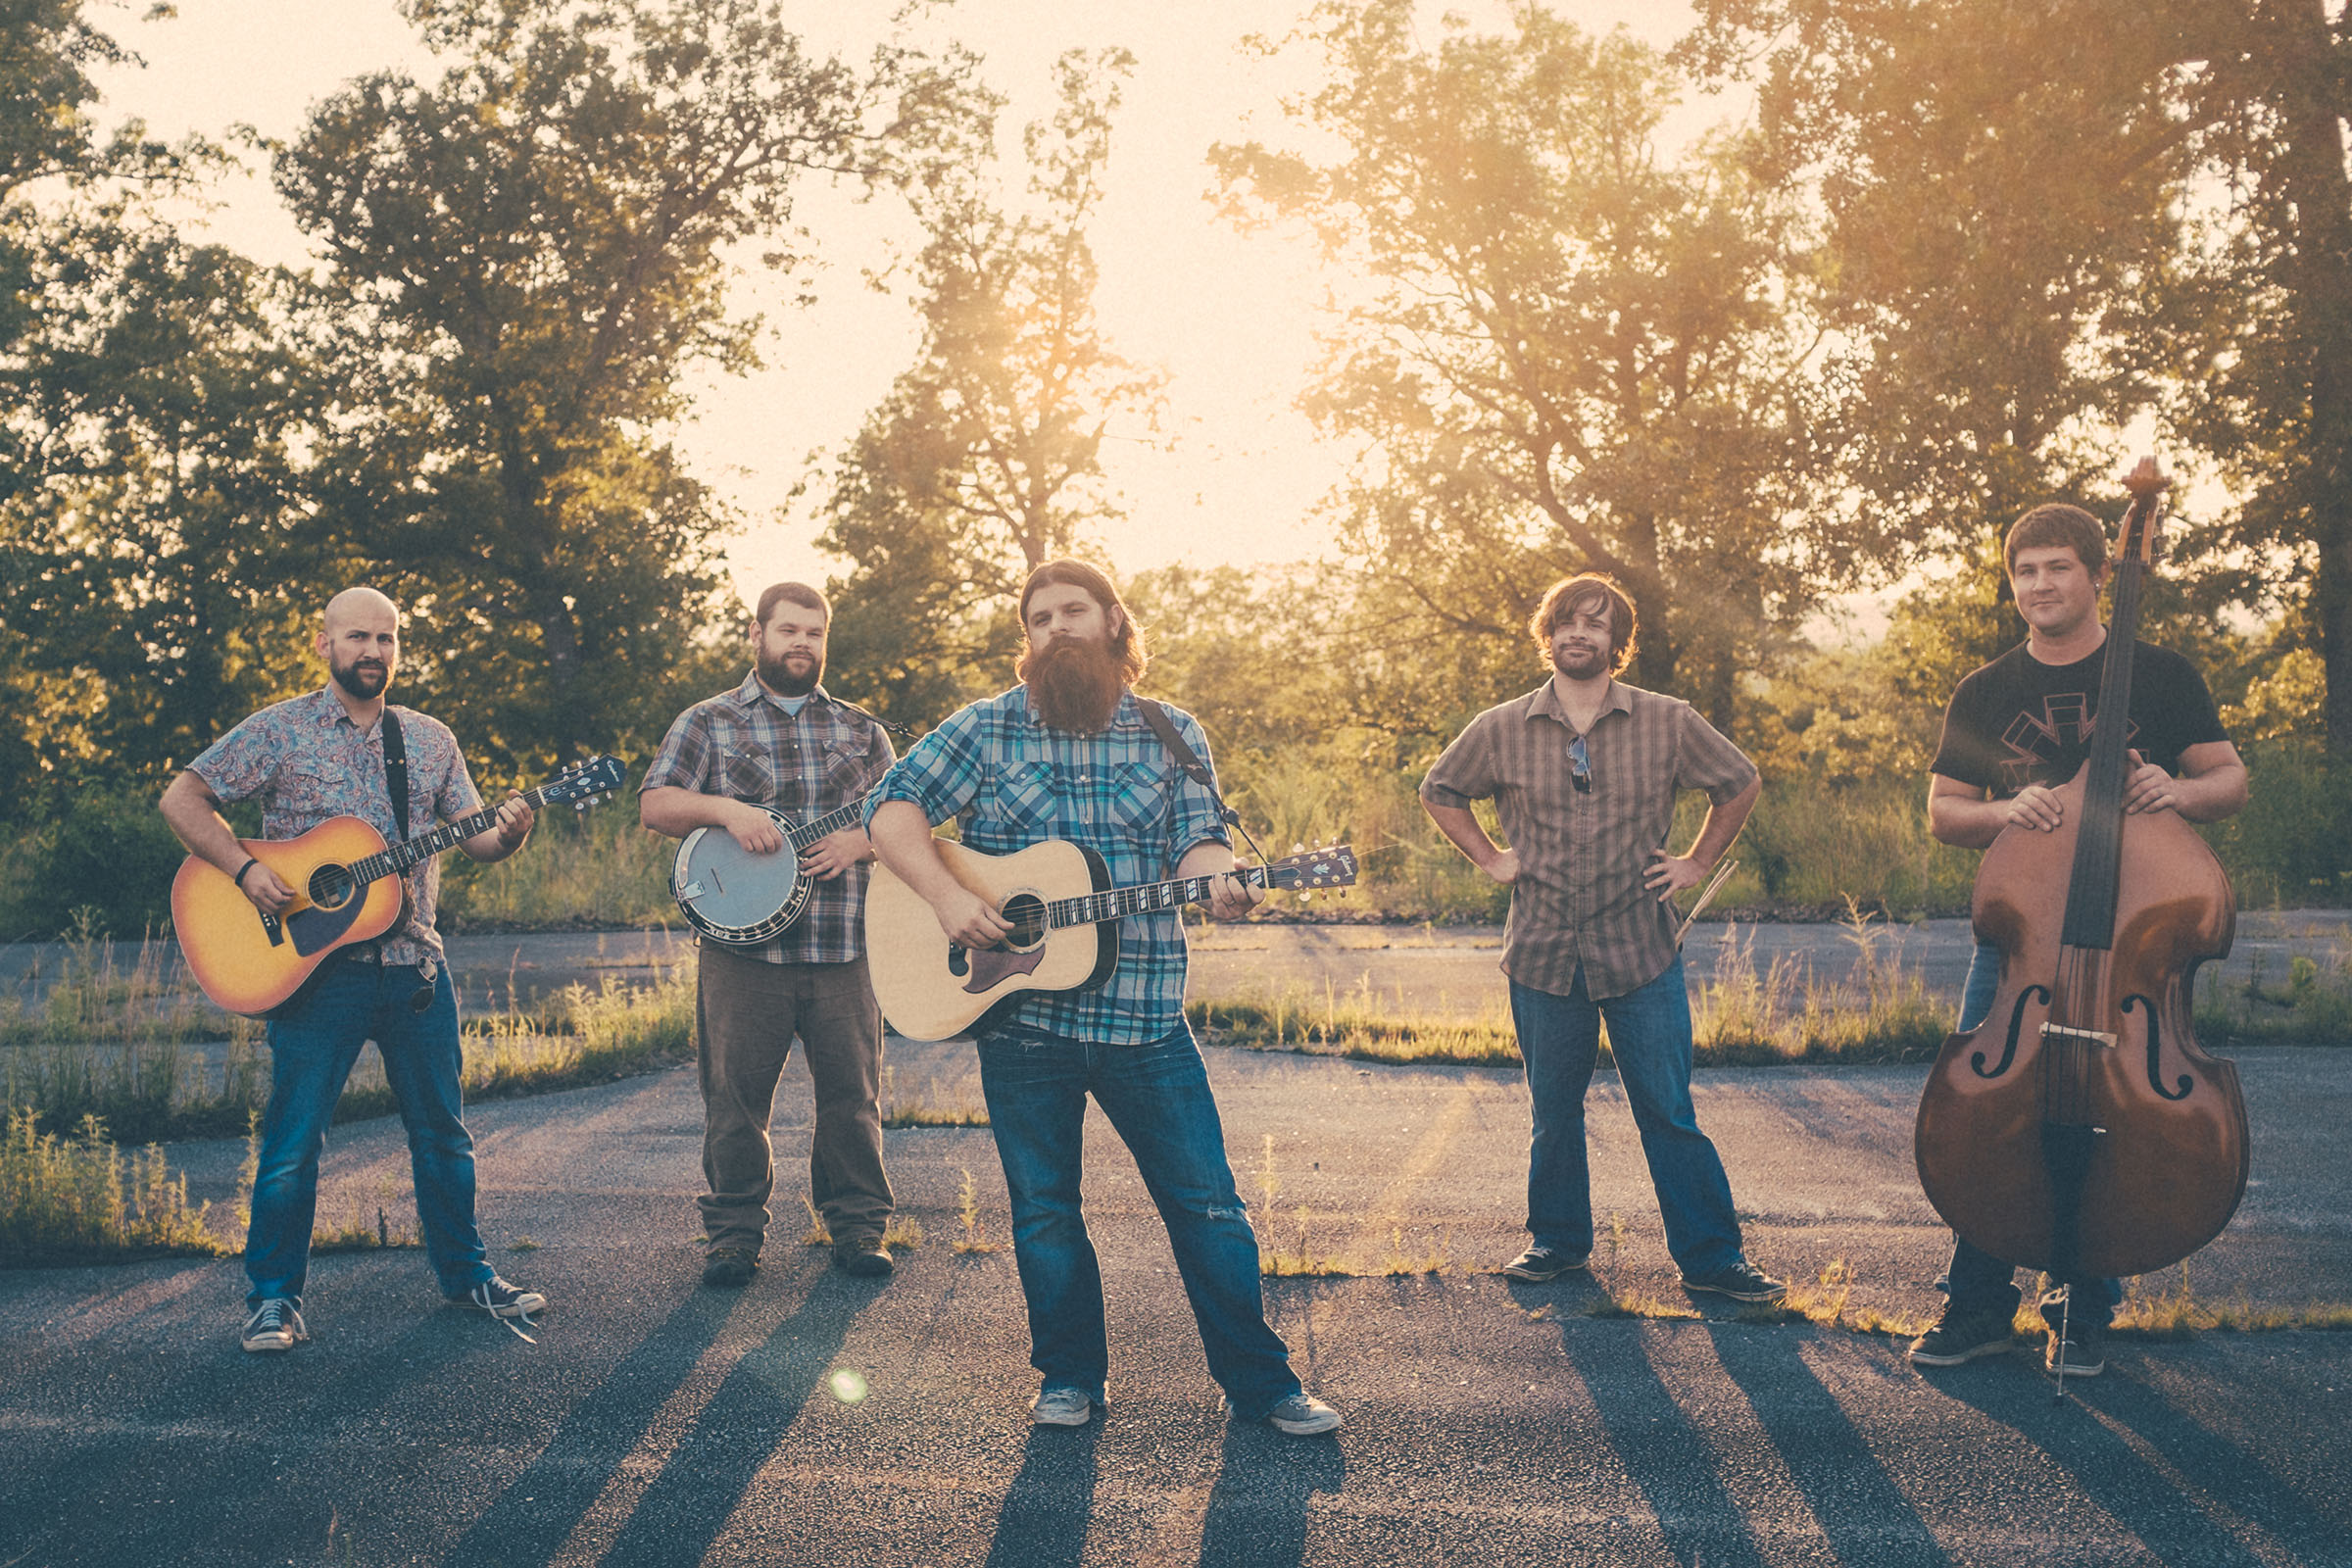 Cutthroat Trout and National Park Radio to play Arvest Concert at